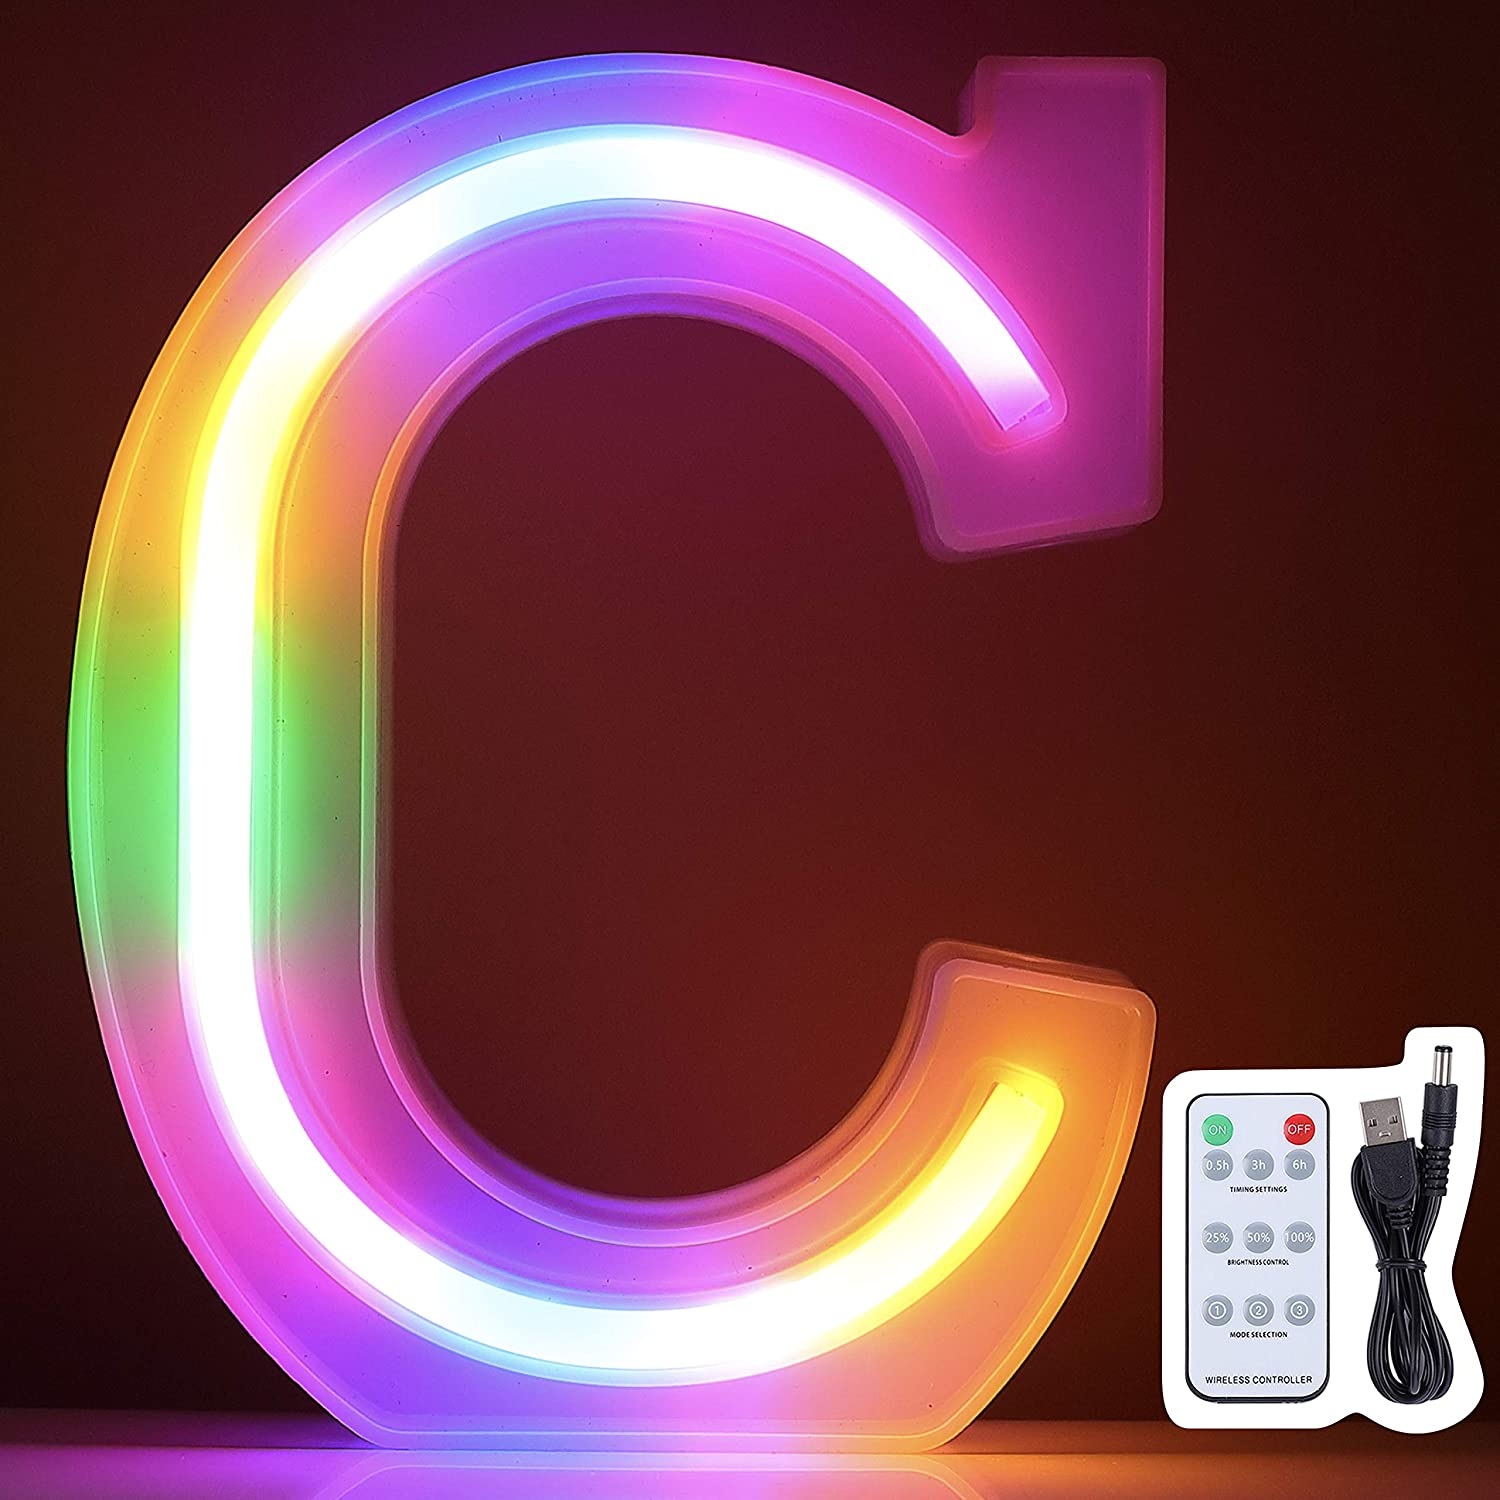 Marquee Letter Lights, Colorful Led Neon Signs, Upgrade Remote Control, Wall Decor Lihgt up for Home, Bedroom, Decoration on Wedding, Birthday, Christmas, Confession, Battery/USB Powered (Letter C)